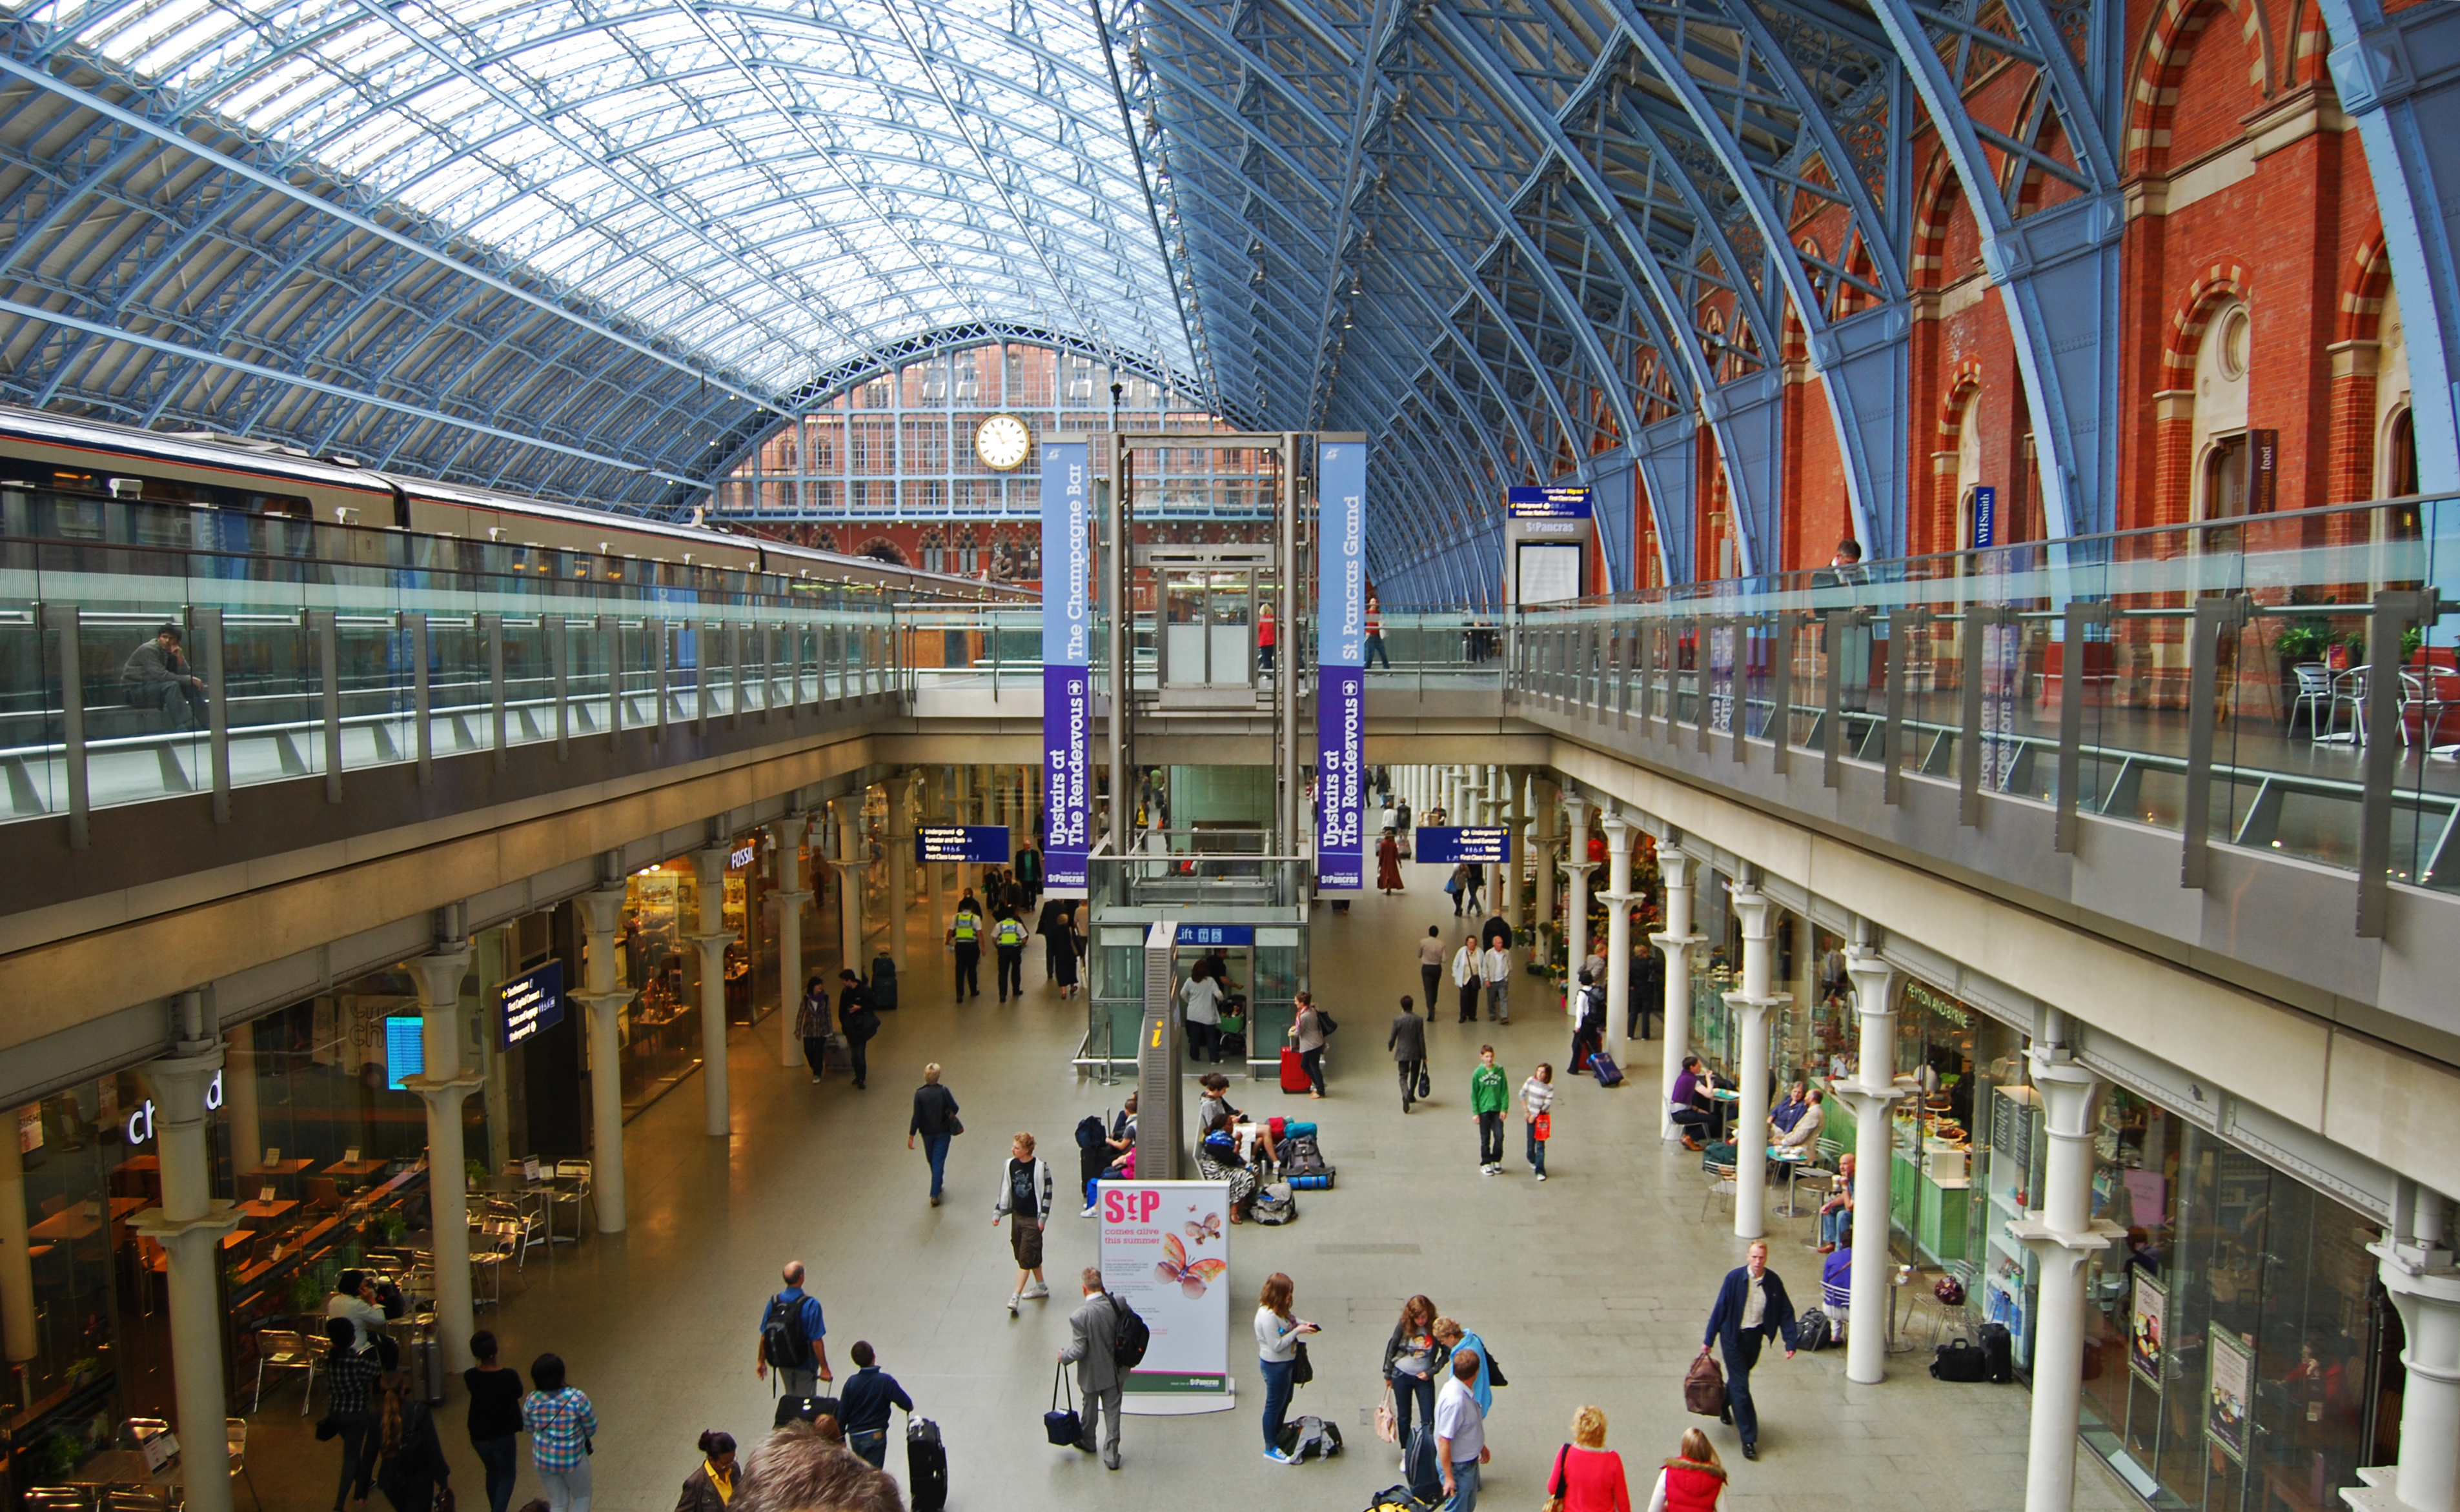 St Pancras Temporary Office Space in London